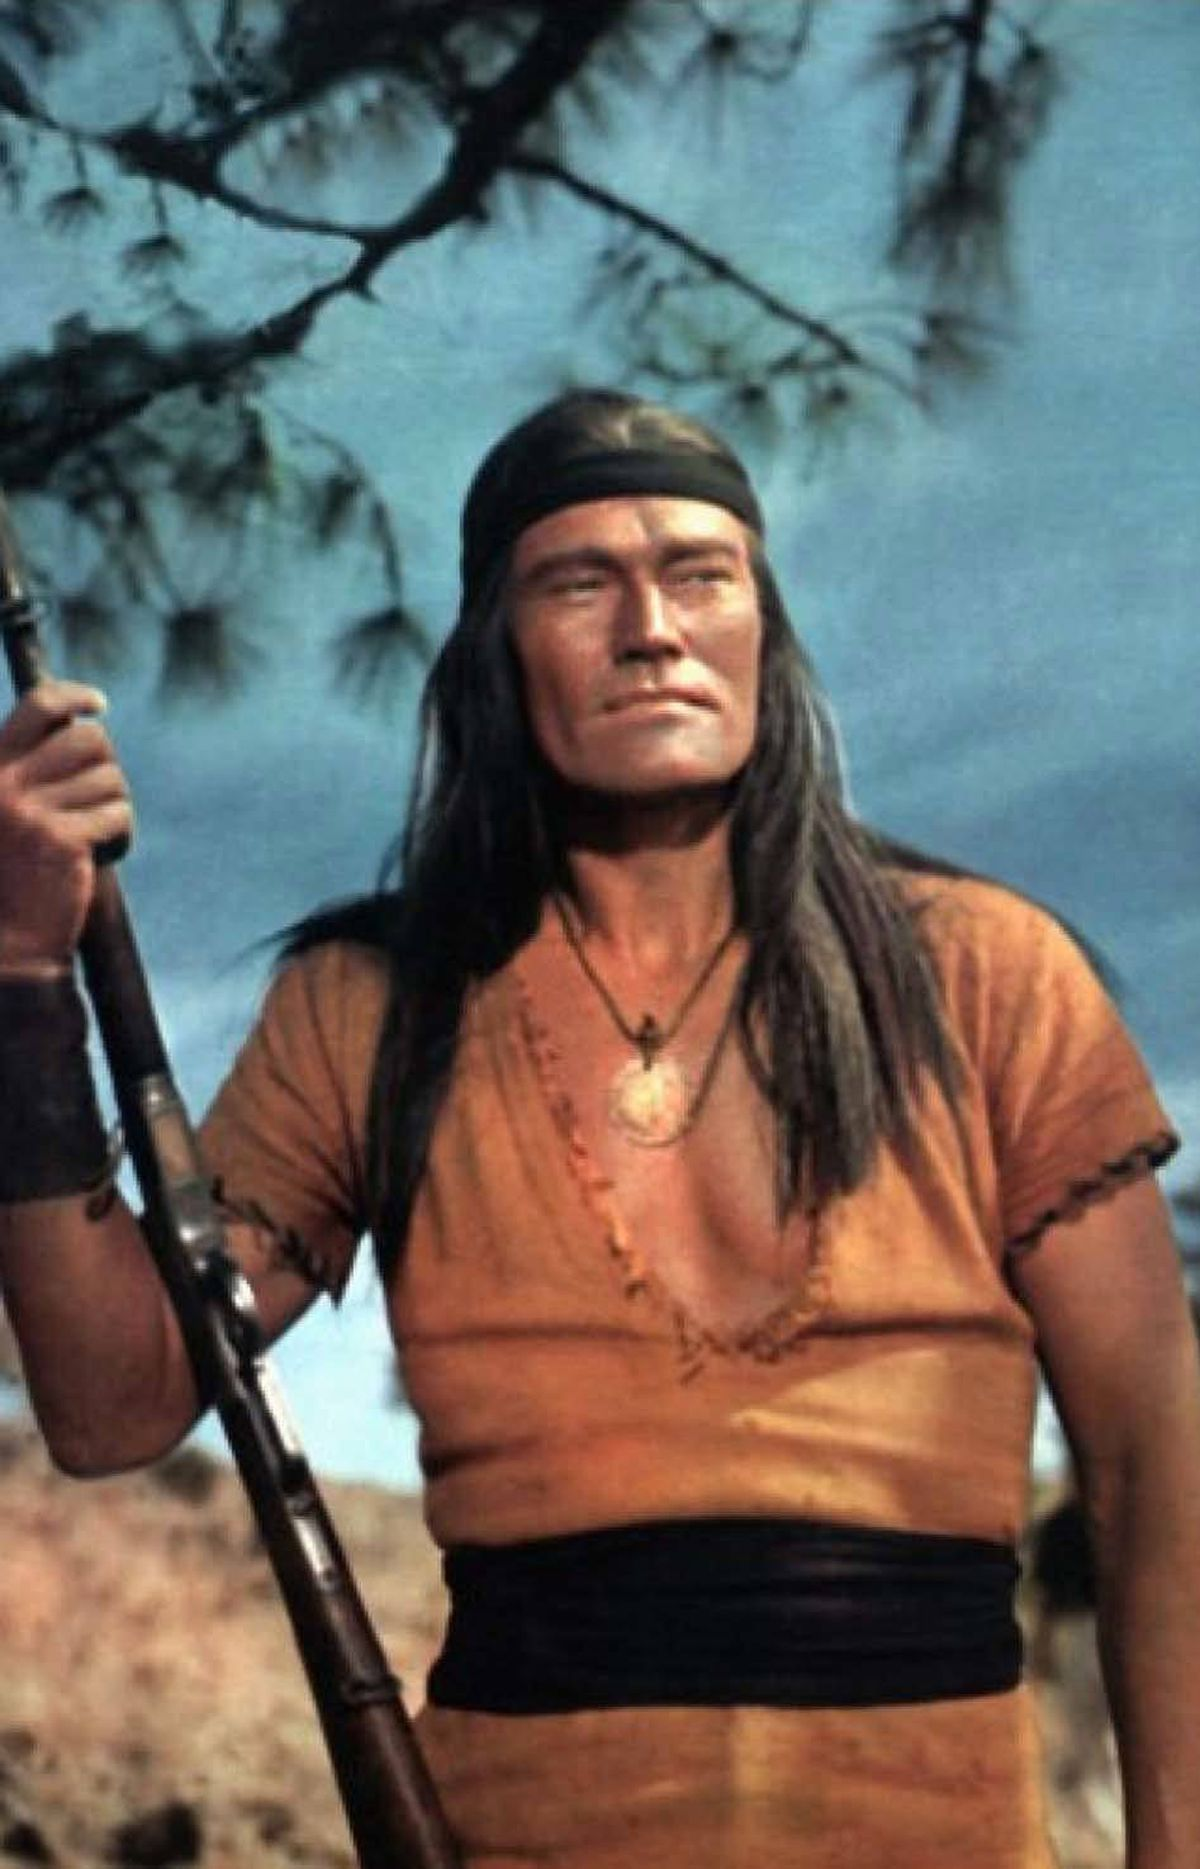 MOVIE Geronimo TCM 11:15 p.m. ET; 8:15 p.m. PT You thought Bryan Cranston was versatile? Back in 1962, the rangy actor Chuck Connors was midway through his five-season run as a straight-shootin' lawman on The Rifleman, while on the big screen he was playing the most famous native American character in history. Fantastically miscast, Connors is bewigged and steely-eyed as the legendary Apache leader, who is forced to surrender in order to prevent the starvation or massacre of his people. Geronimo humbly agrees to live out his life on a reservation, but goes back on the warpath when the U.S. government reneges on treaty promises. And so it begins.